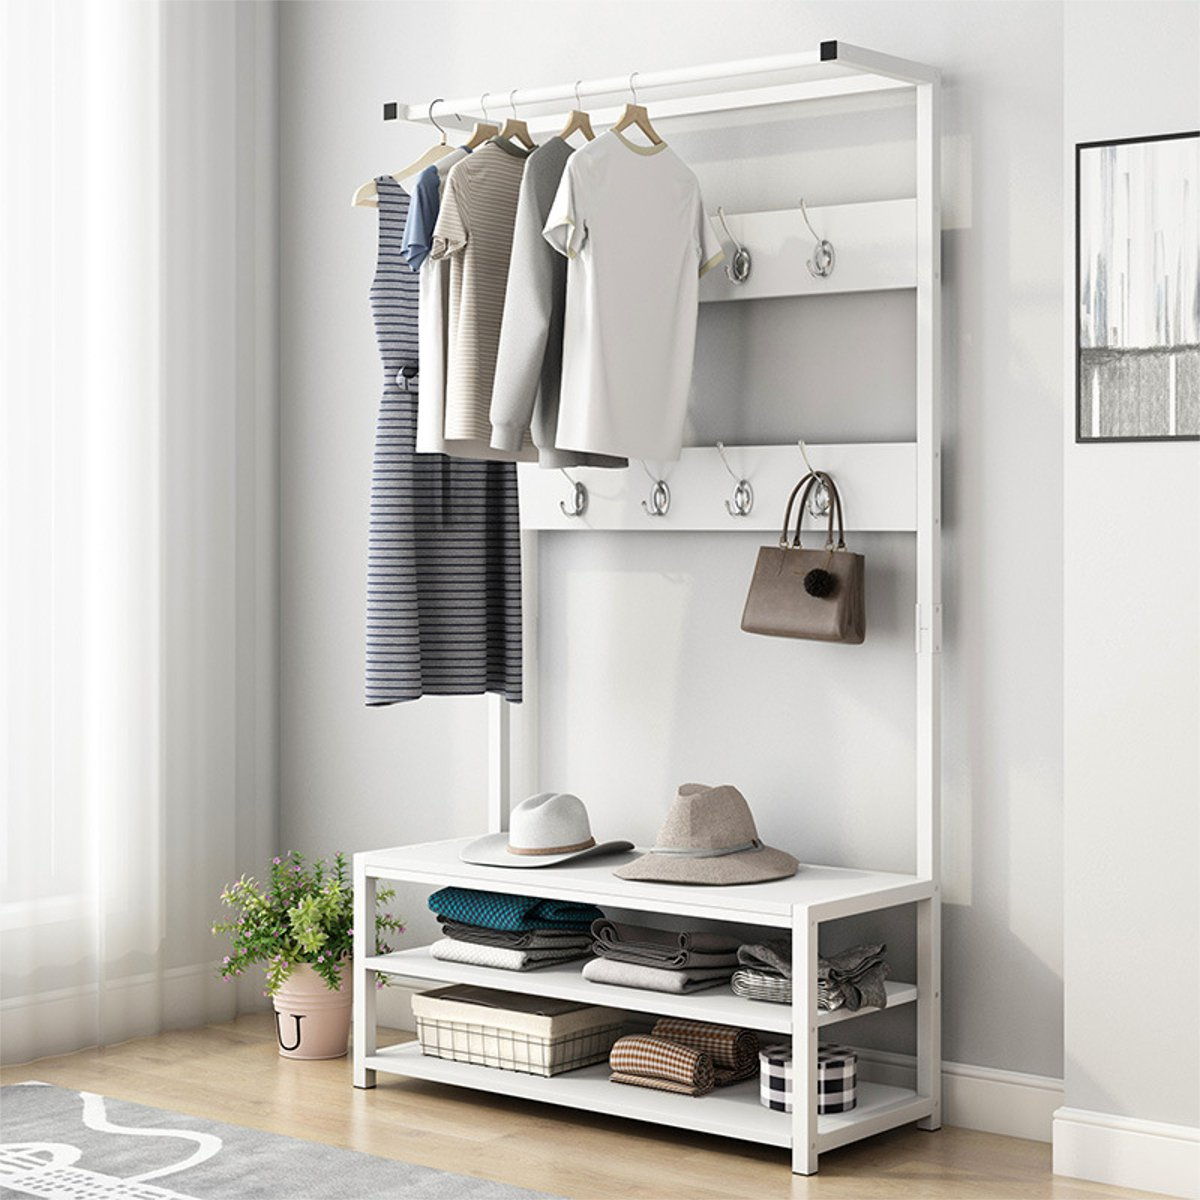 170cm Standing Coat Rack Shelf Multifunction Clothes Shoes Bench Hanger Hooks Storage Holder Living Room Furniture 60/80cm